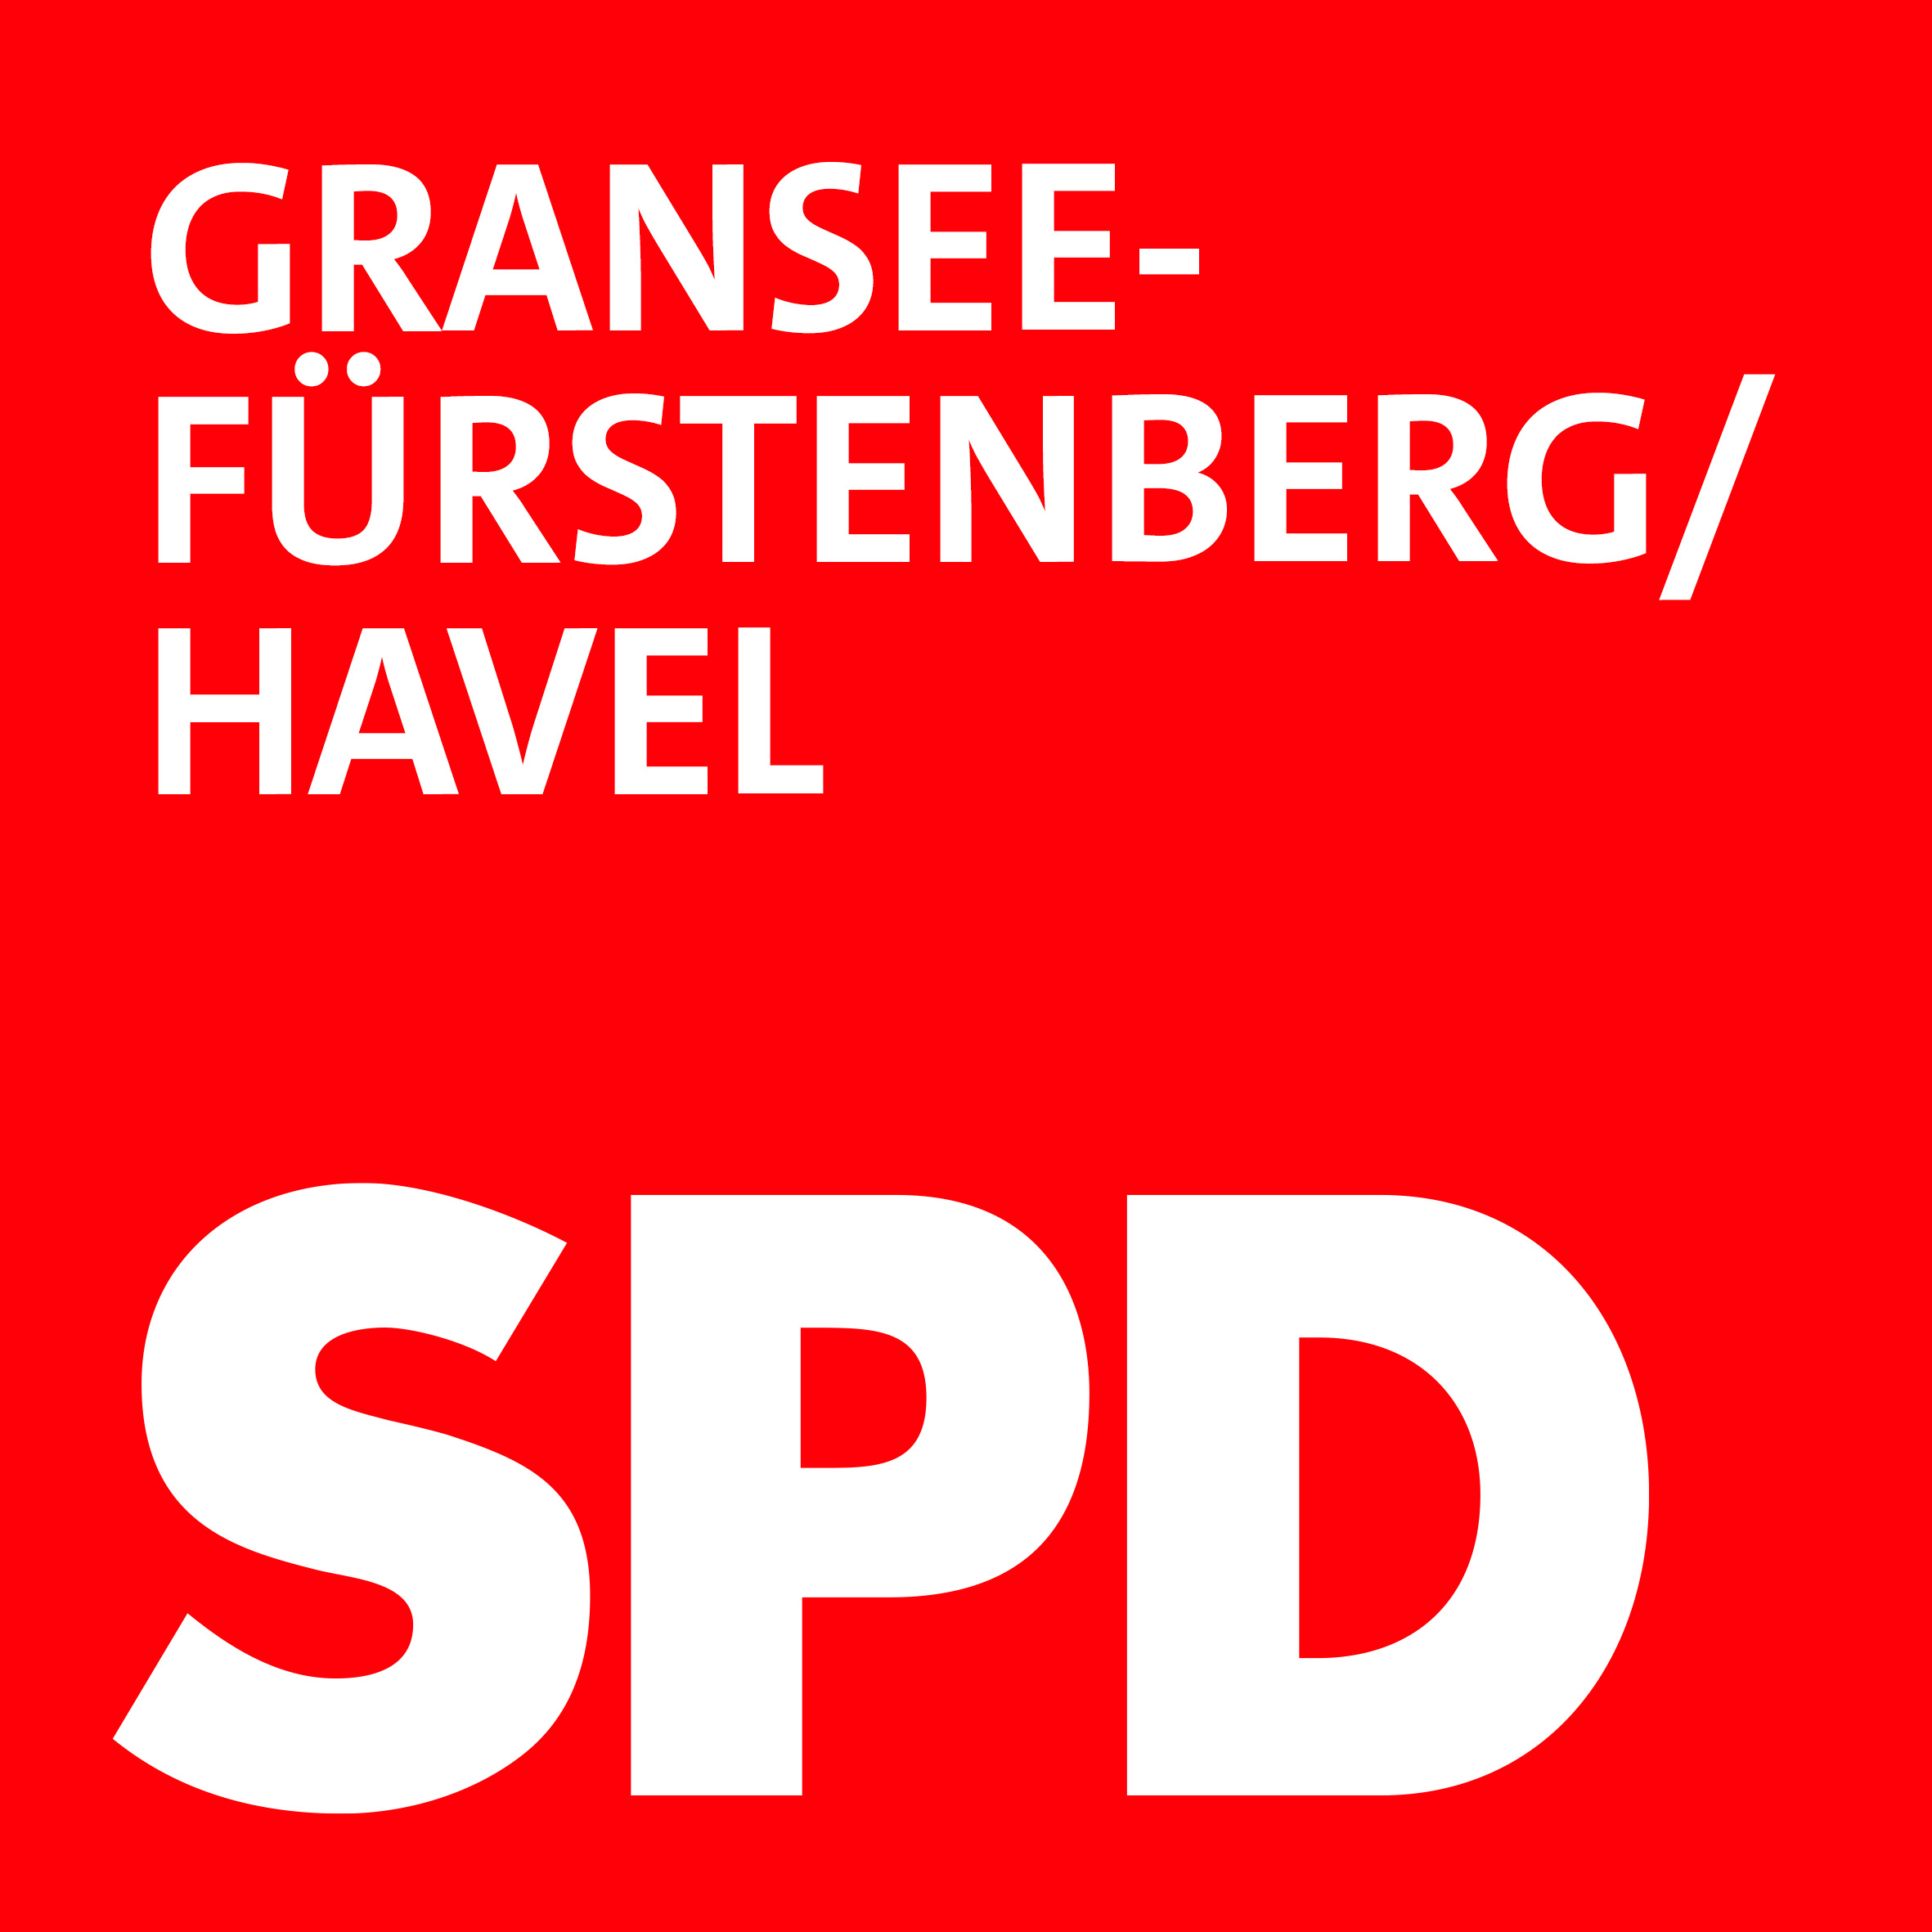 SPD Gransee-Fürstenberg/Havel